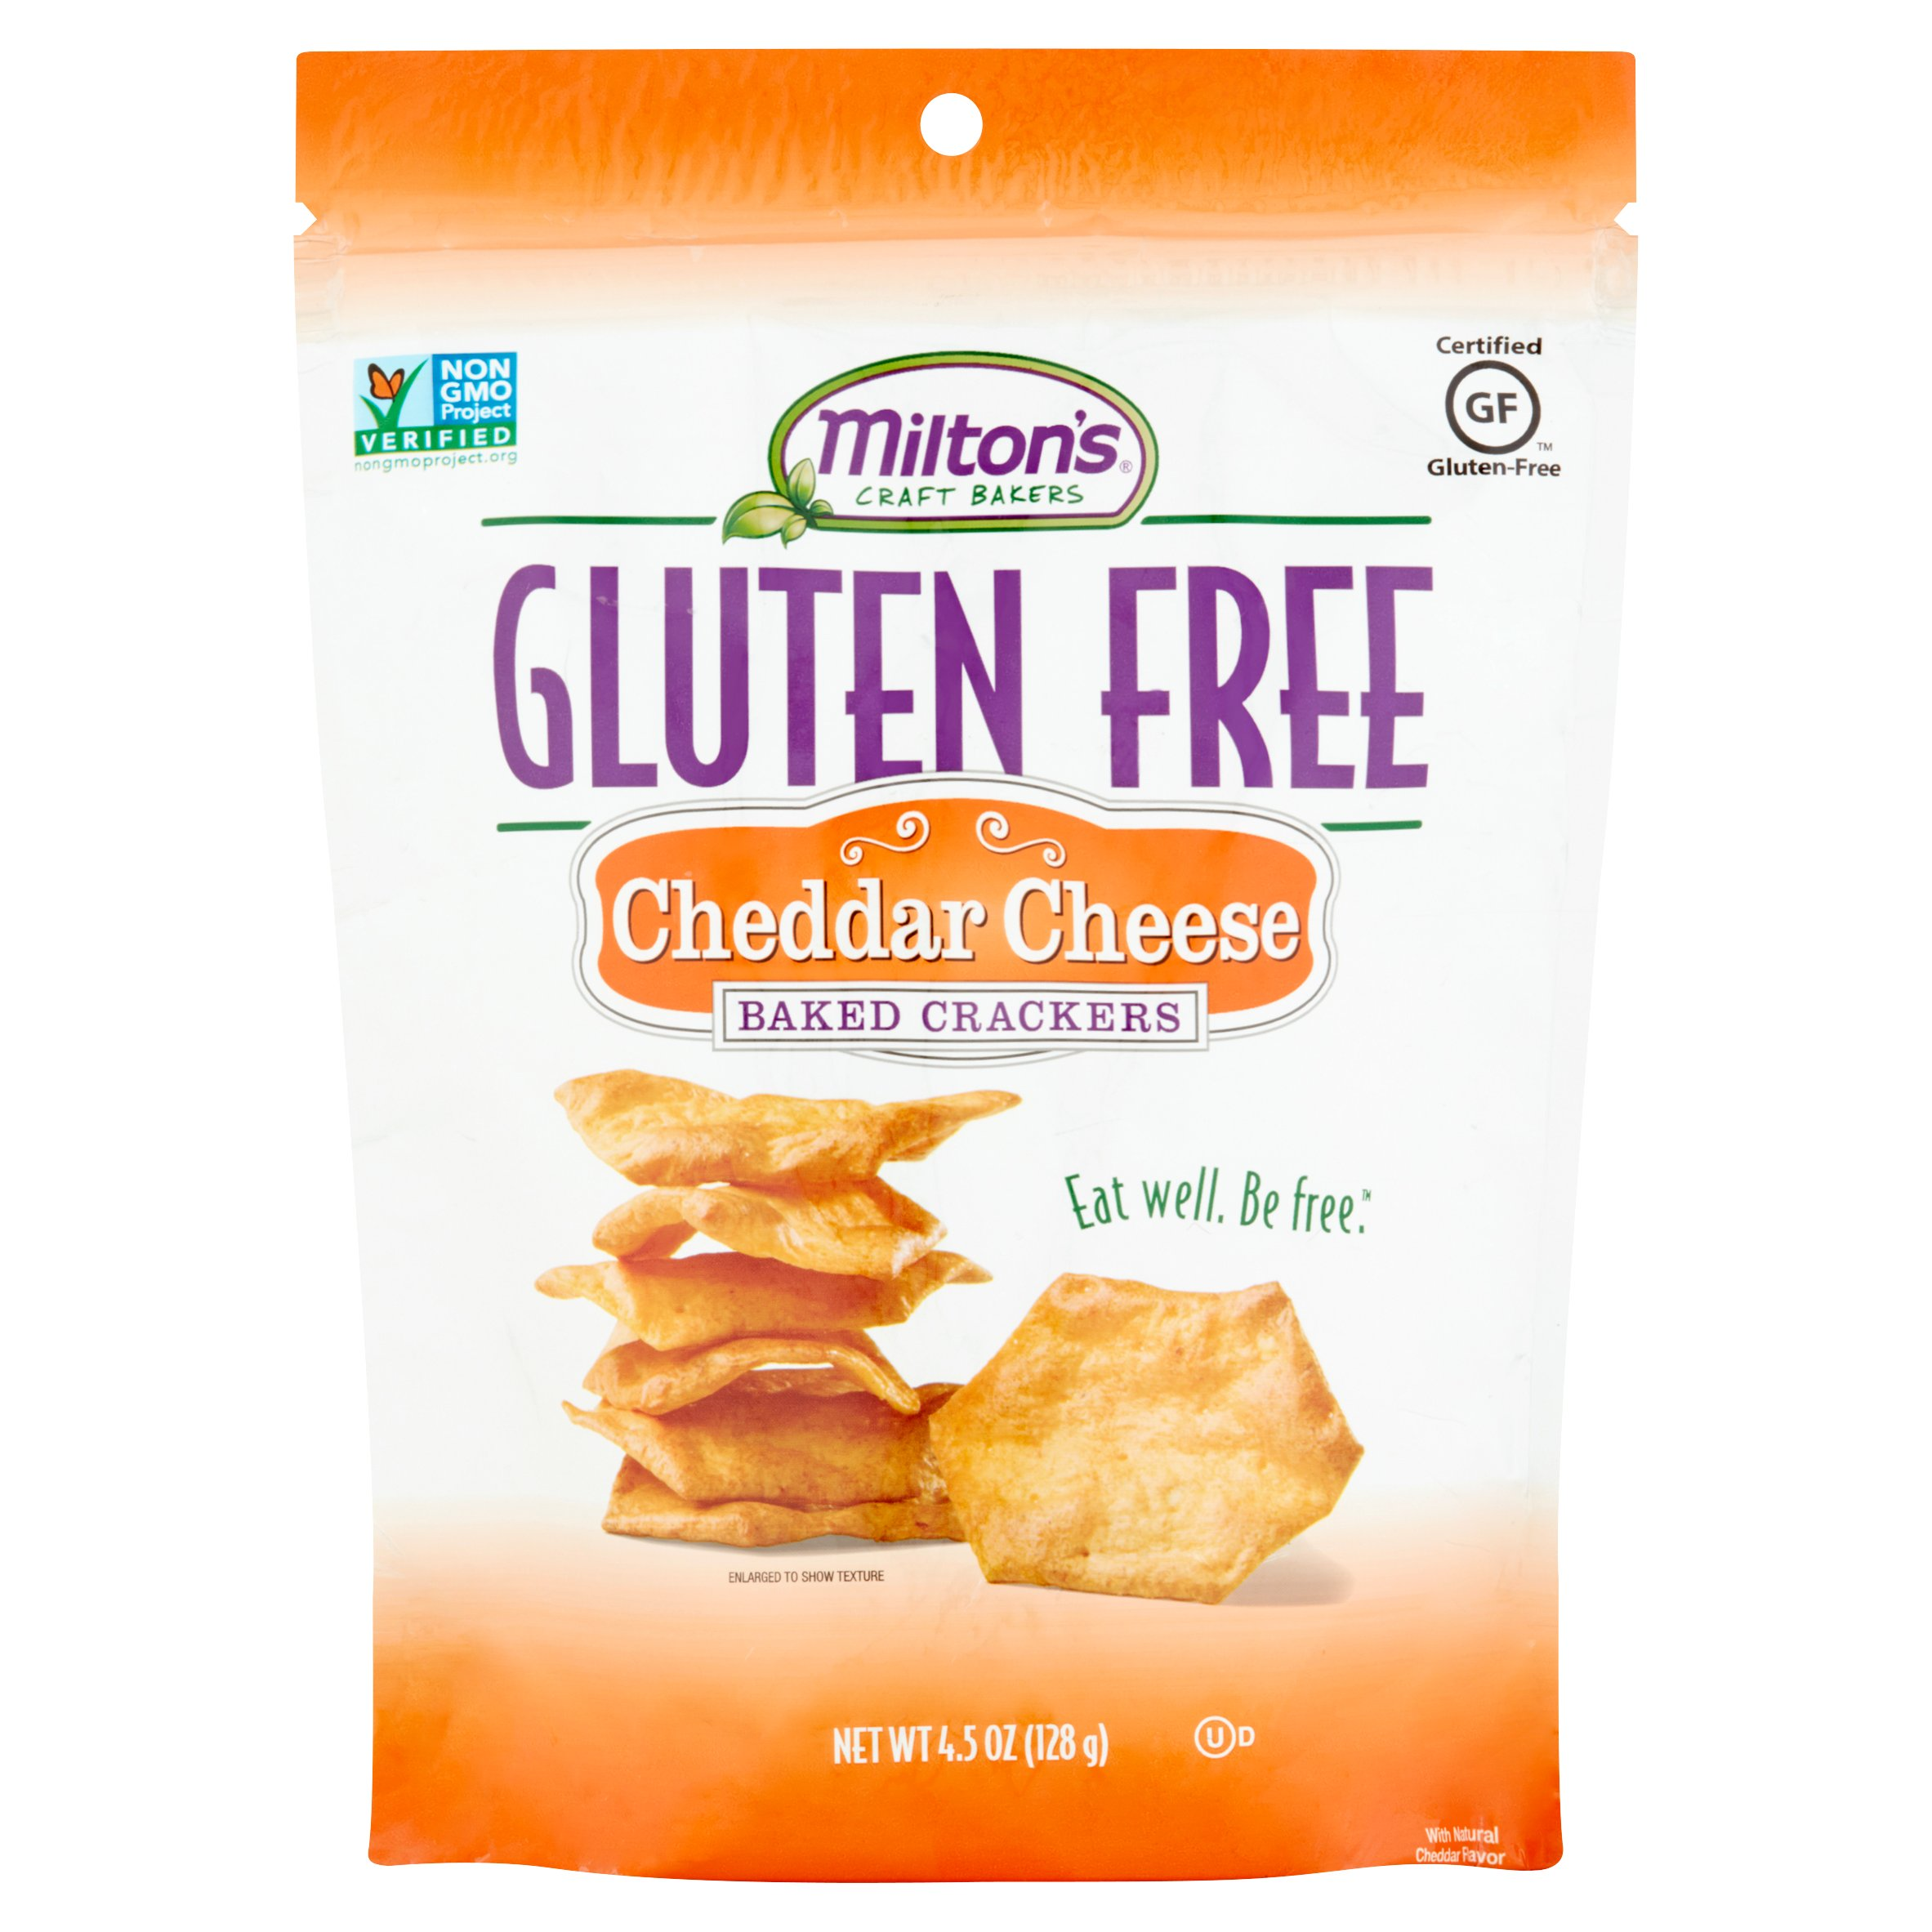 Milton's Craft Bakers Gluten Free Cheddar Cheese Baked Crackers, 4.5 oz by Milton's Baking Company